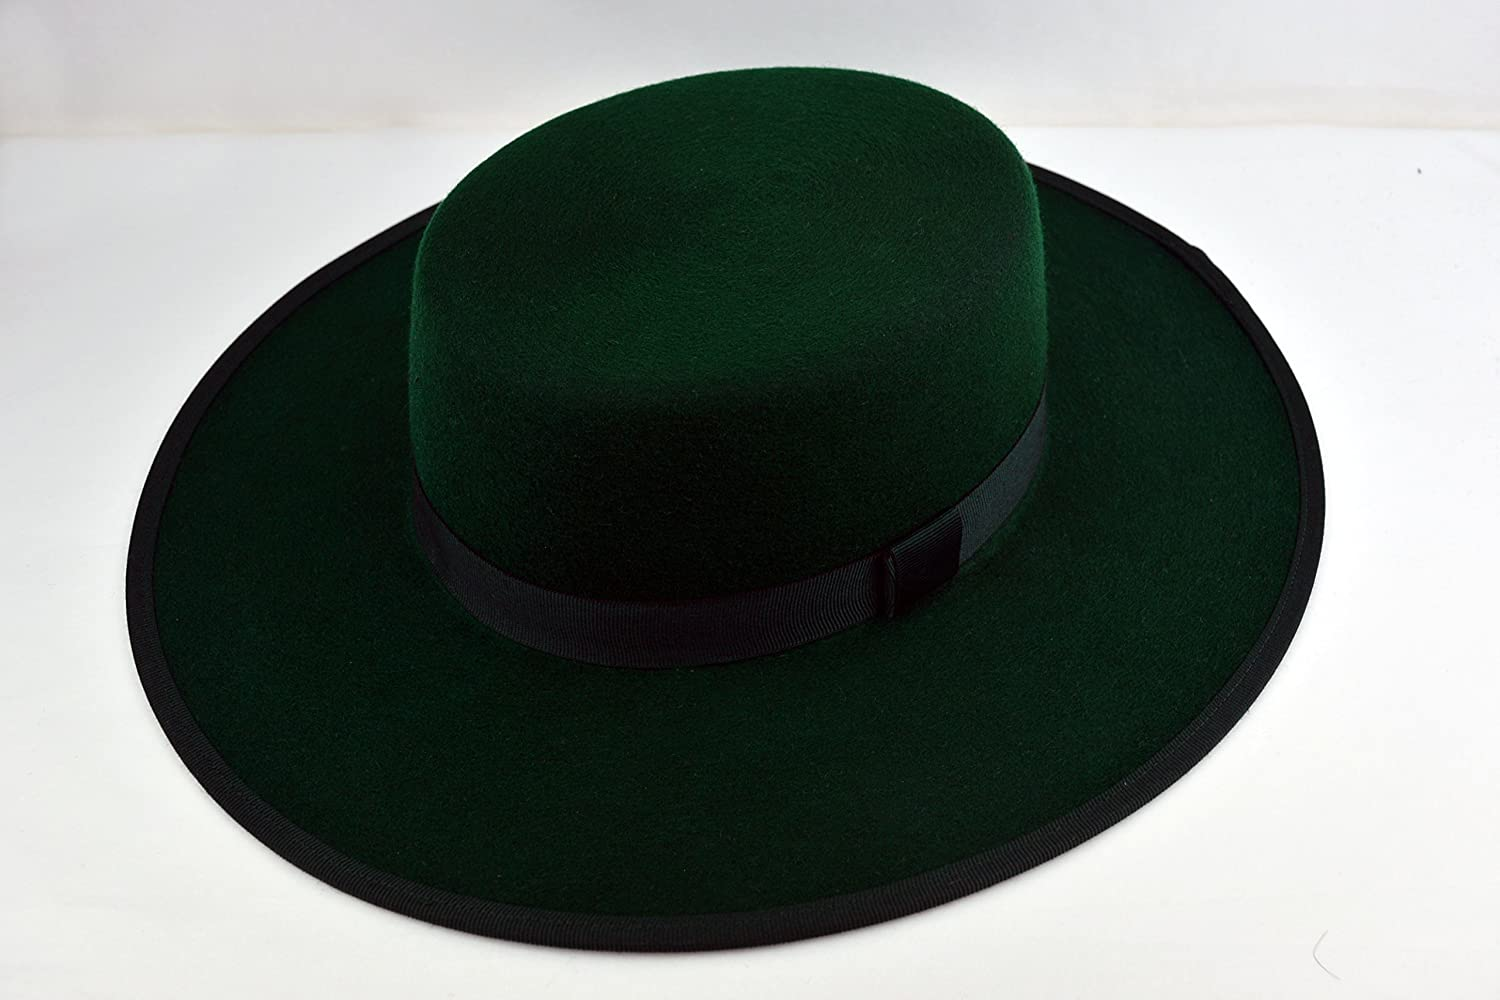 The Emerald - Emerald Green Wool Felt Flat Crown Bolero Hat - Wide Brim -  Men larger image 9f76b5405709